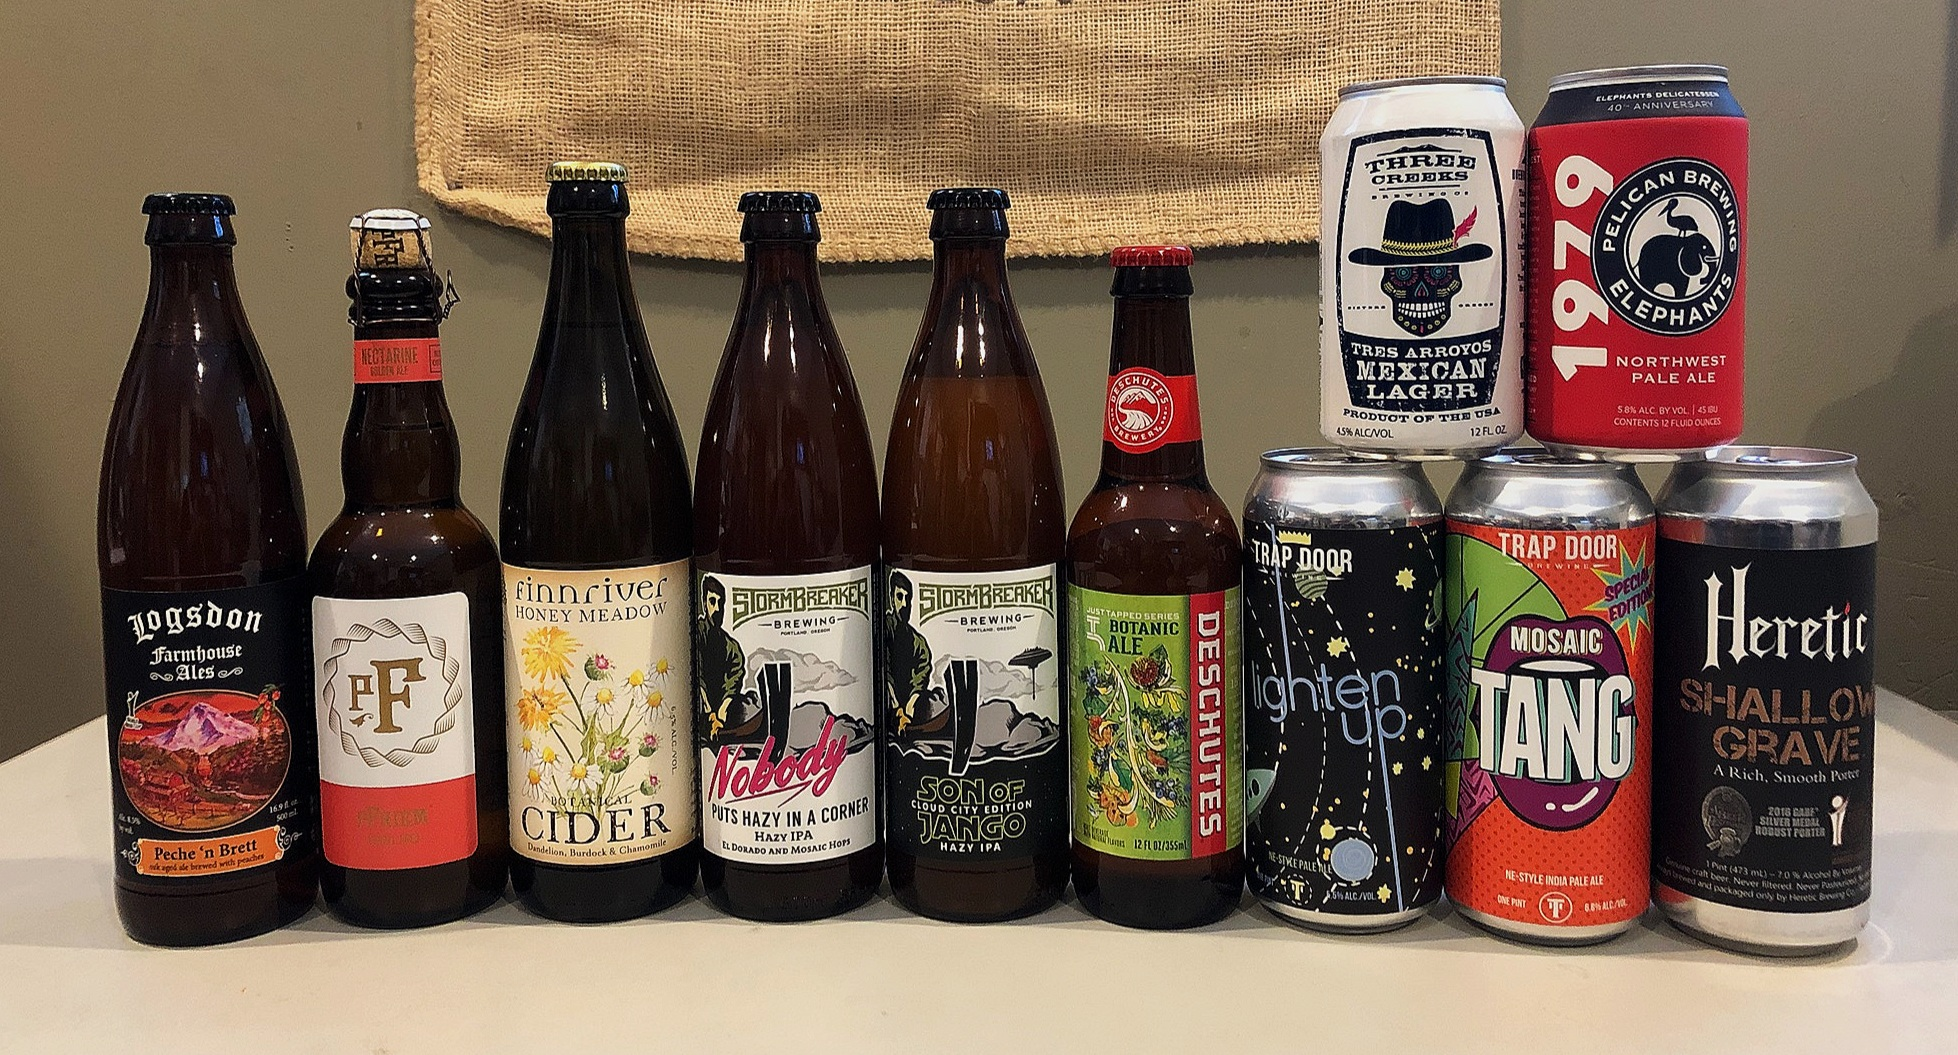 Check out these links to all of the breweries pictured here:   Logsdon  -  pFriem  -  Finnriver  -  Stormbreaker  -  Deschutes  -  Trap Door  -  Heretic  -  Three Creeks  -  Pelican